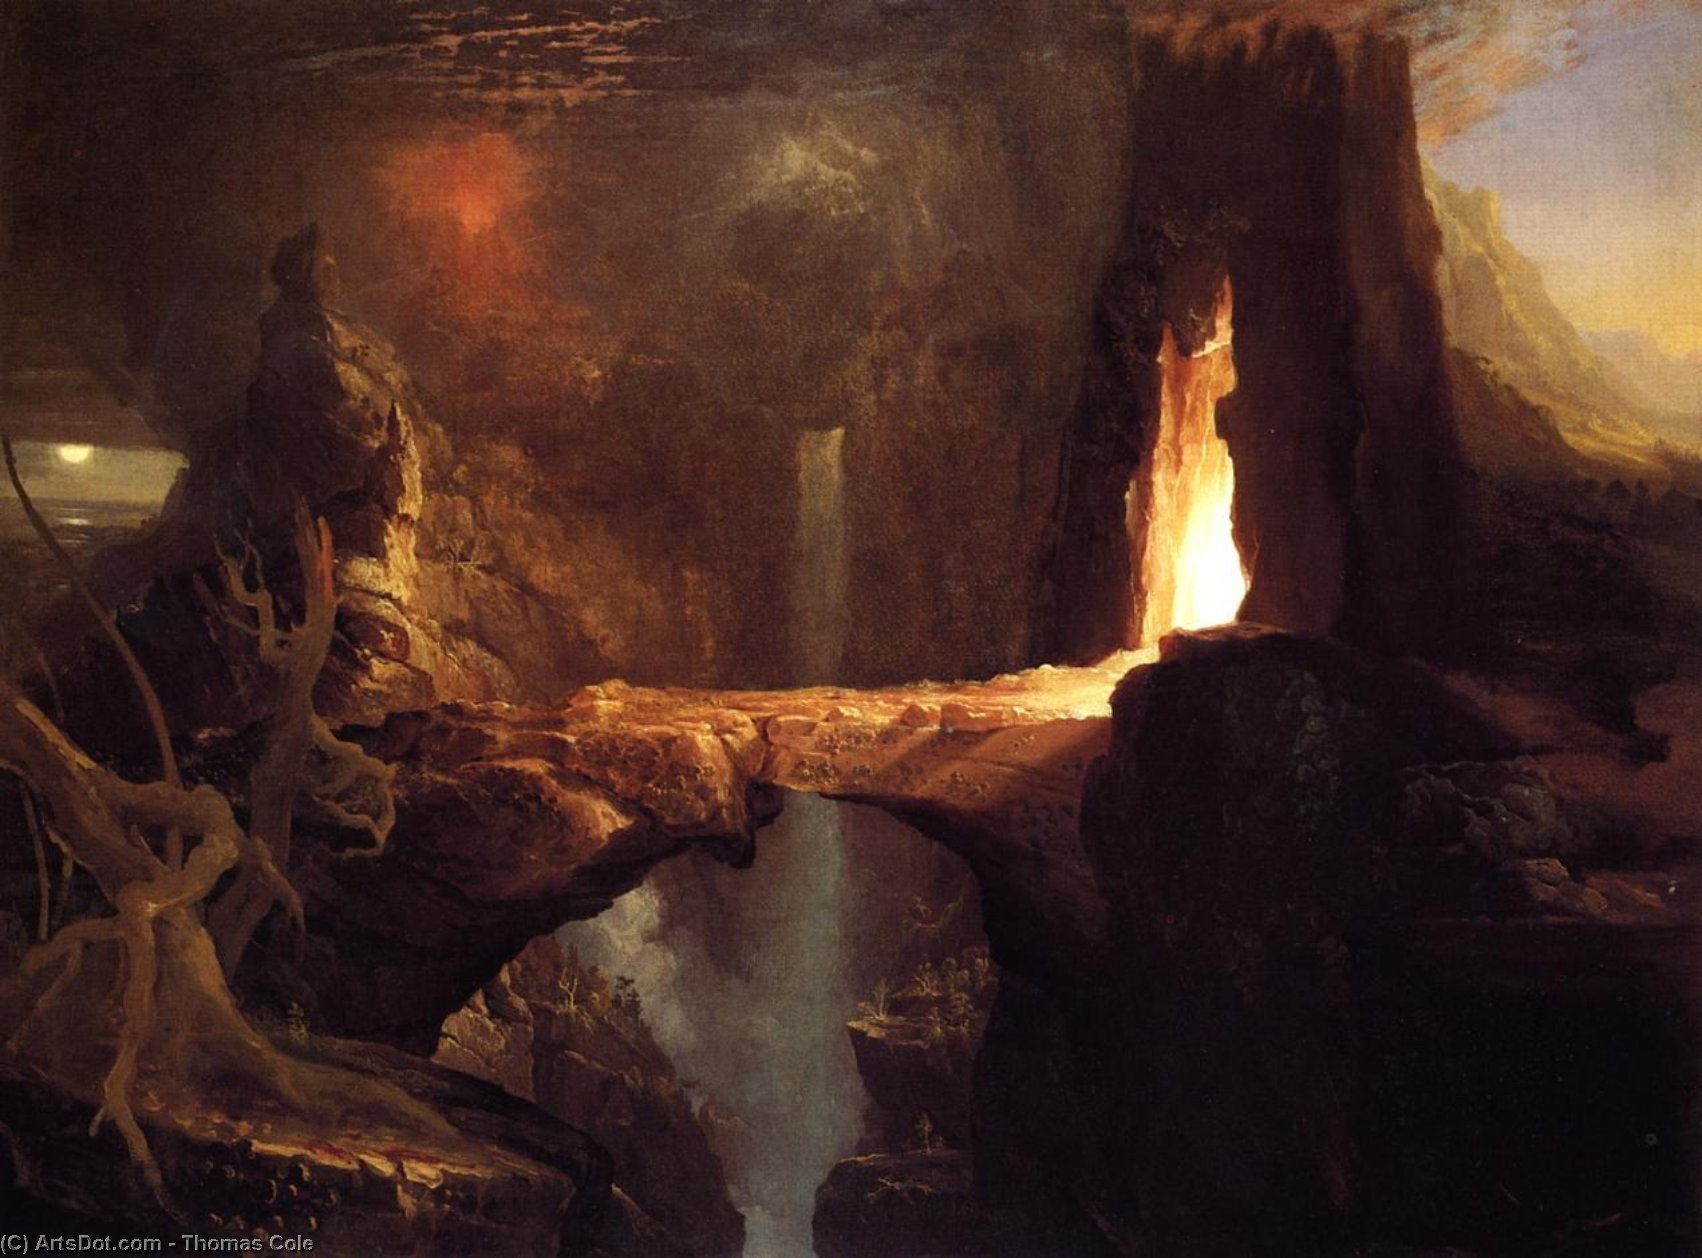 Expulsion . lune et firelight, huile sur toile de Thomas Cole (1801-1848, United Kingdom)